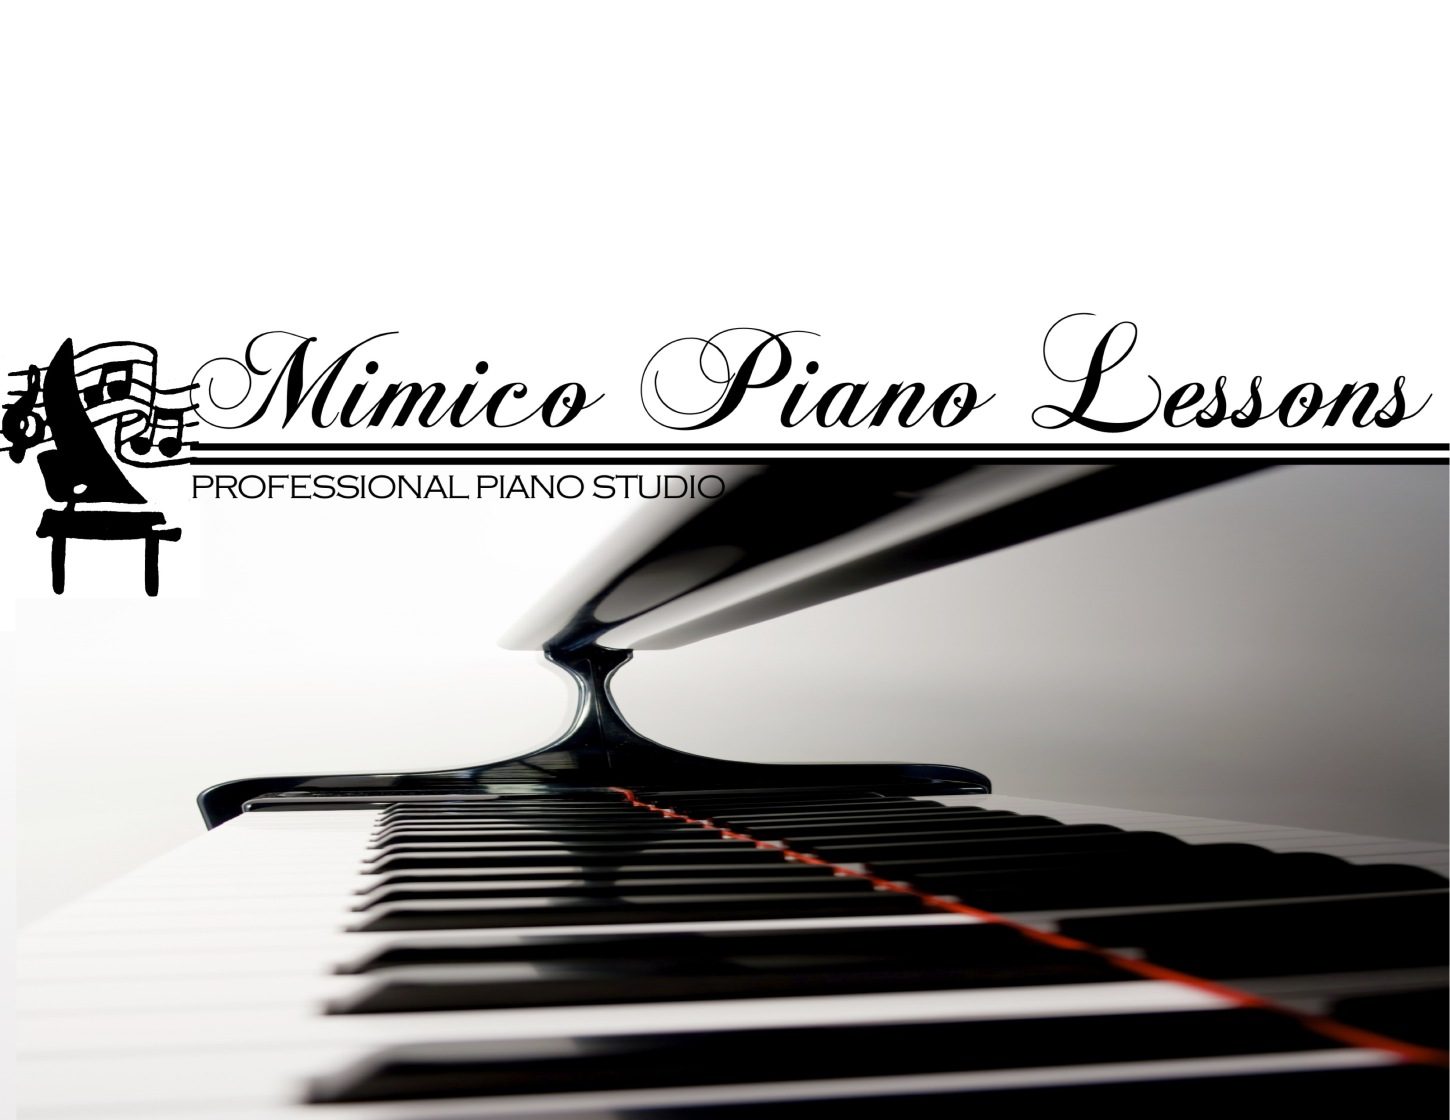 Mimico Piano Lessons Professional Piano Studio, Humber Bay Shores